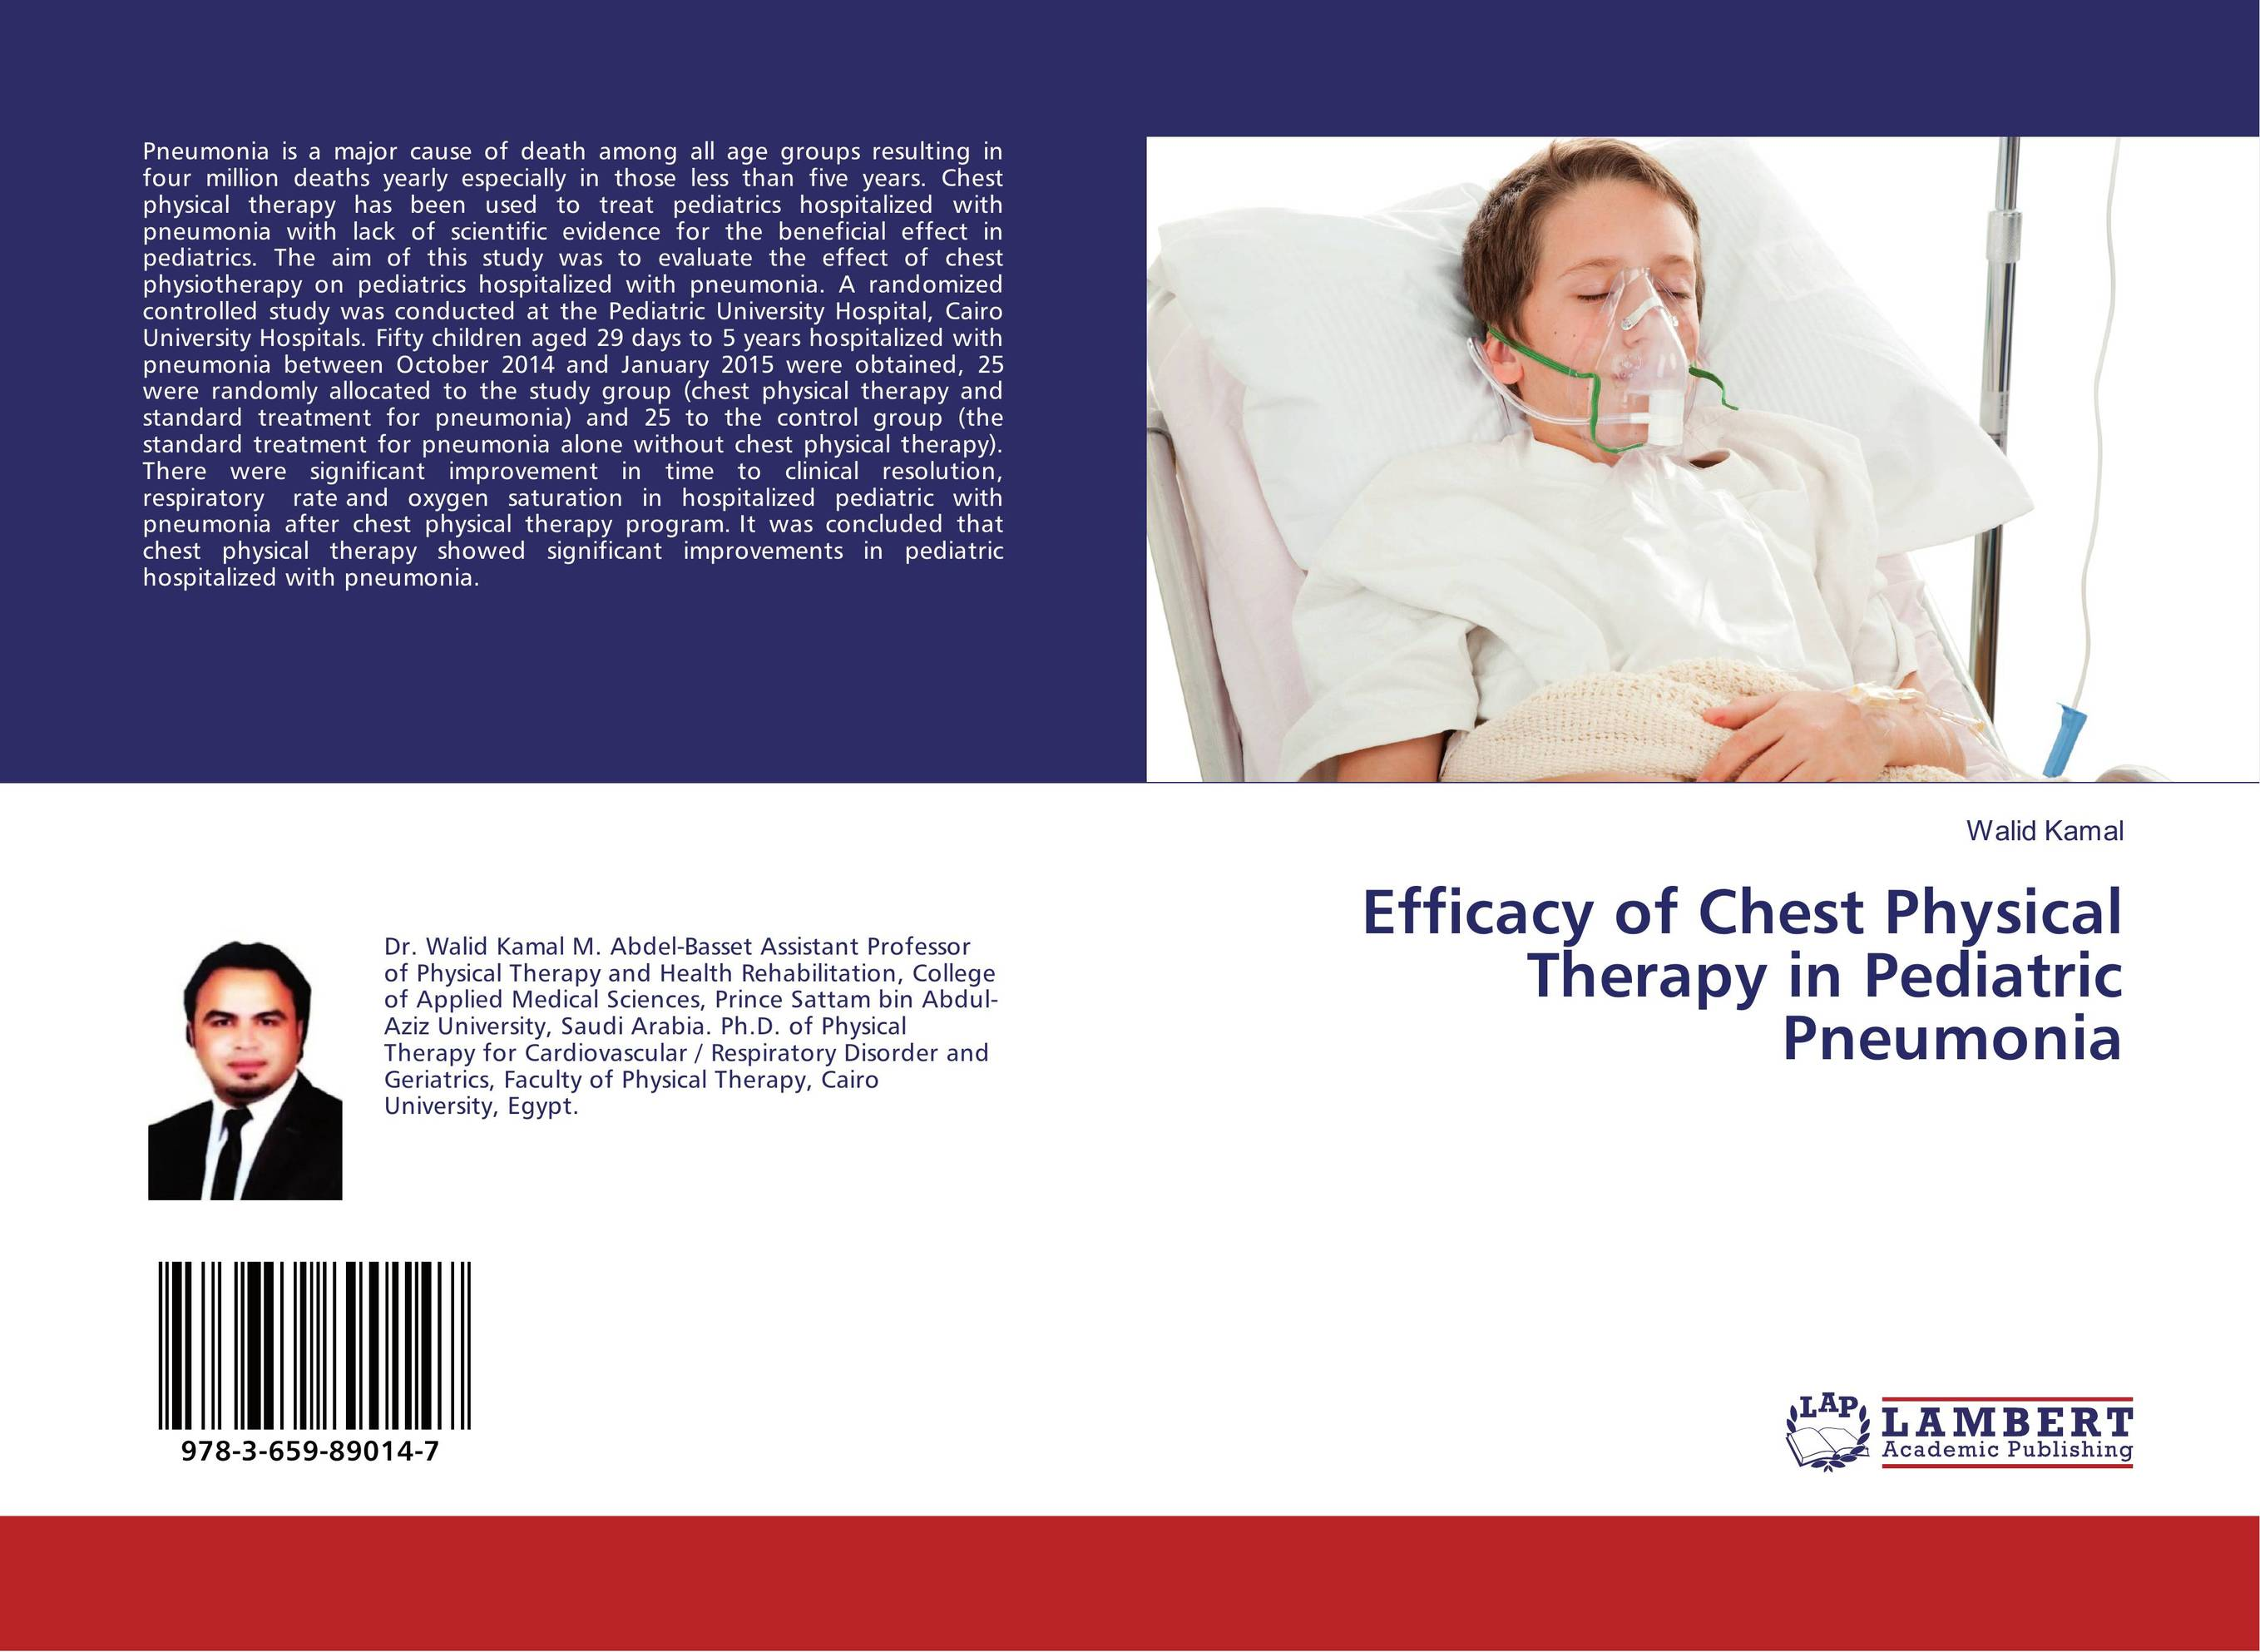 Efficacy of Chest Physical Therapy in Pediatric Pneumonia physical allergic rhinitis treatment cardio save diode laser therapy wrist watch